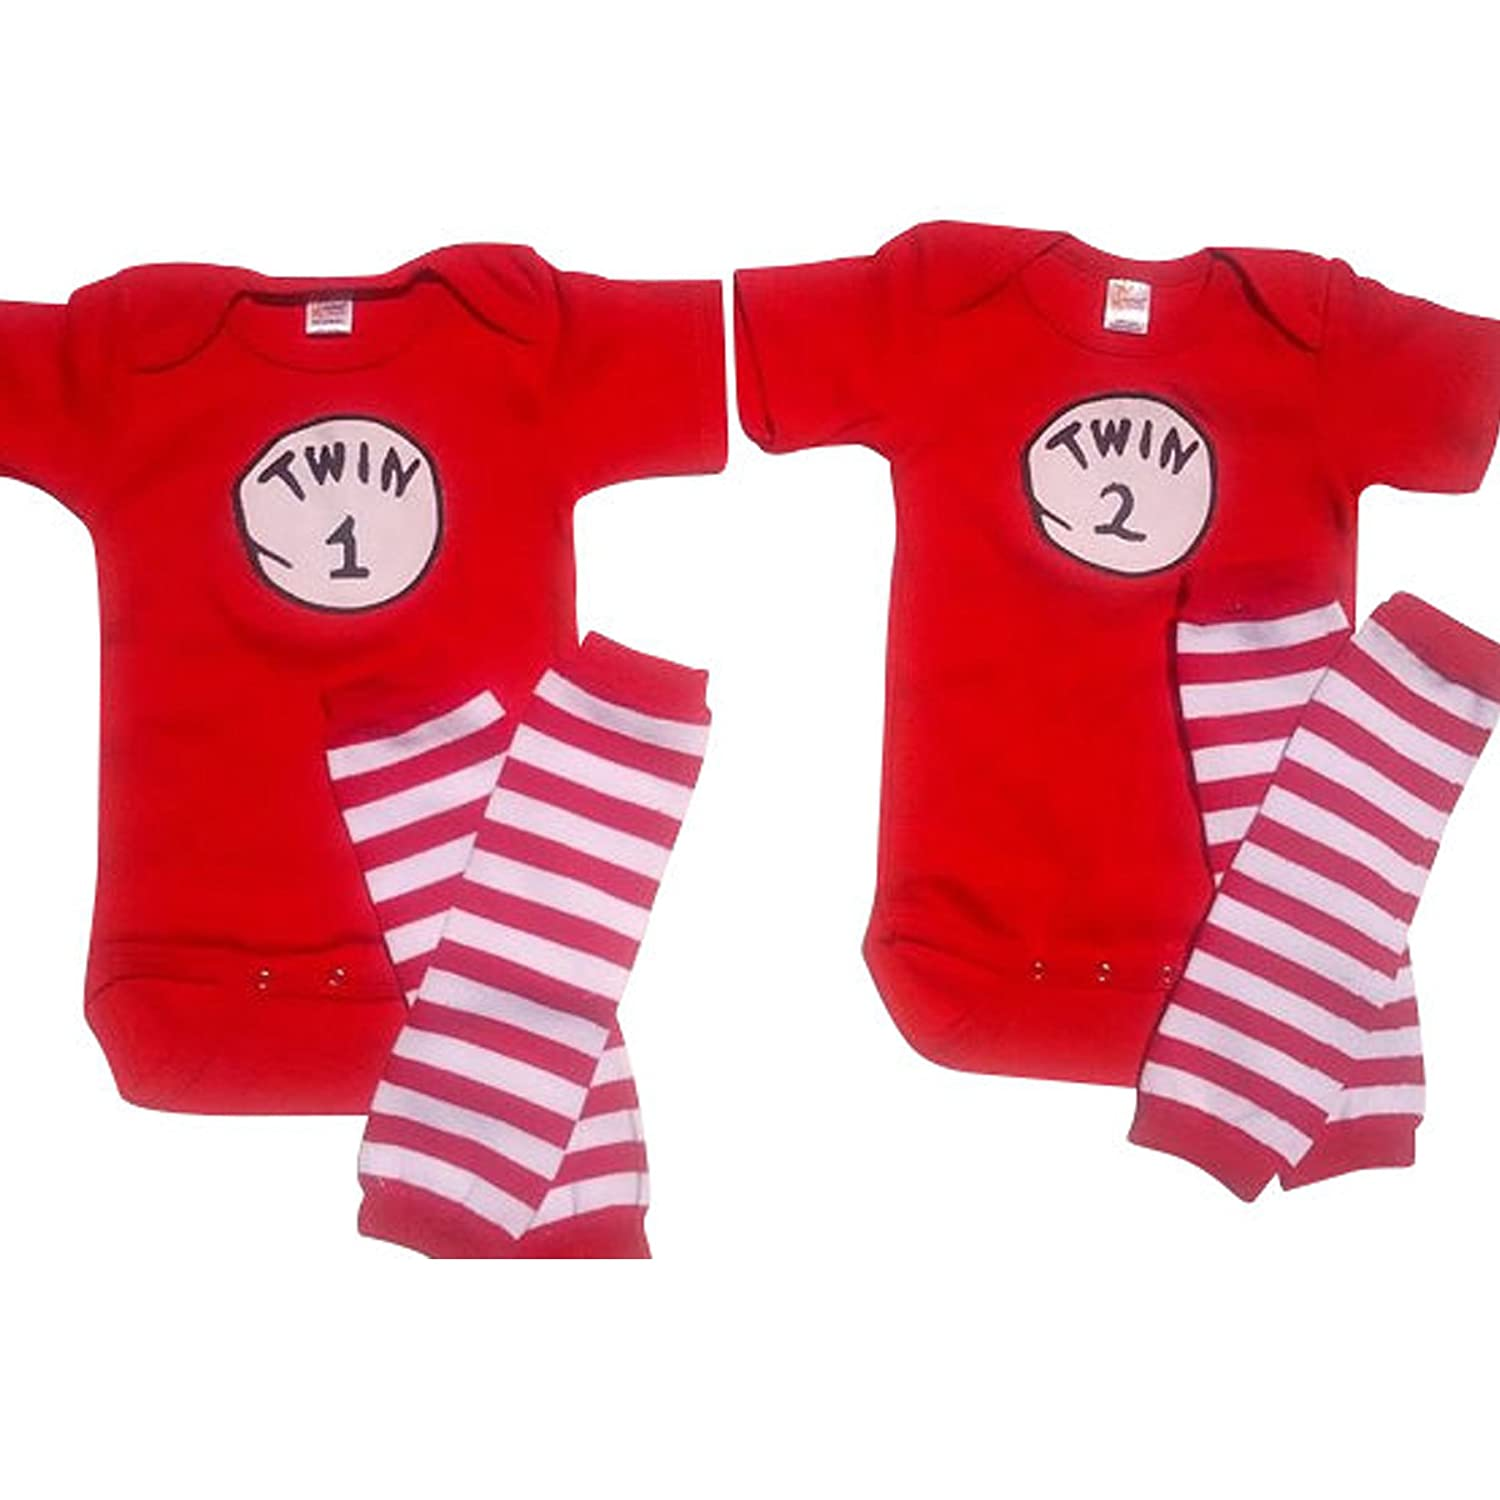 8cc8579ec You\'ve just reached the top selling boy girl twin shop on Amazon! This  adorable set is a must have for your twins. They\'ll love seeing pictures  of ...